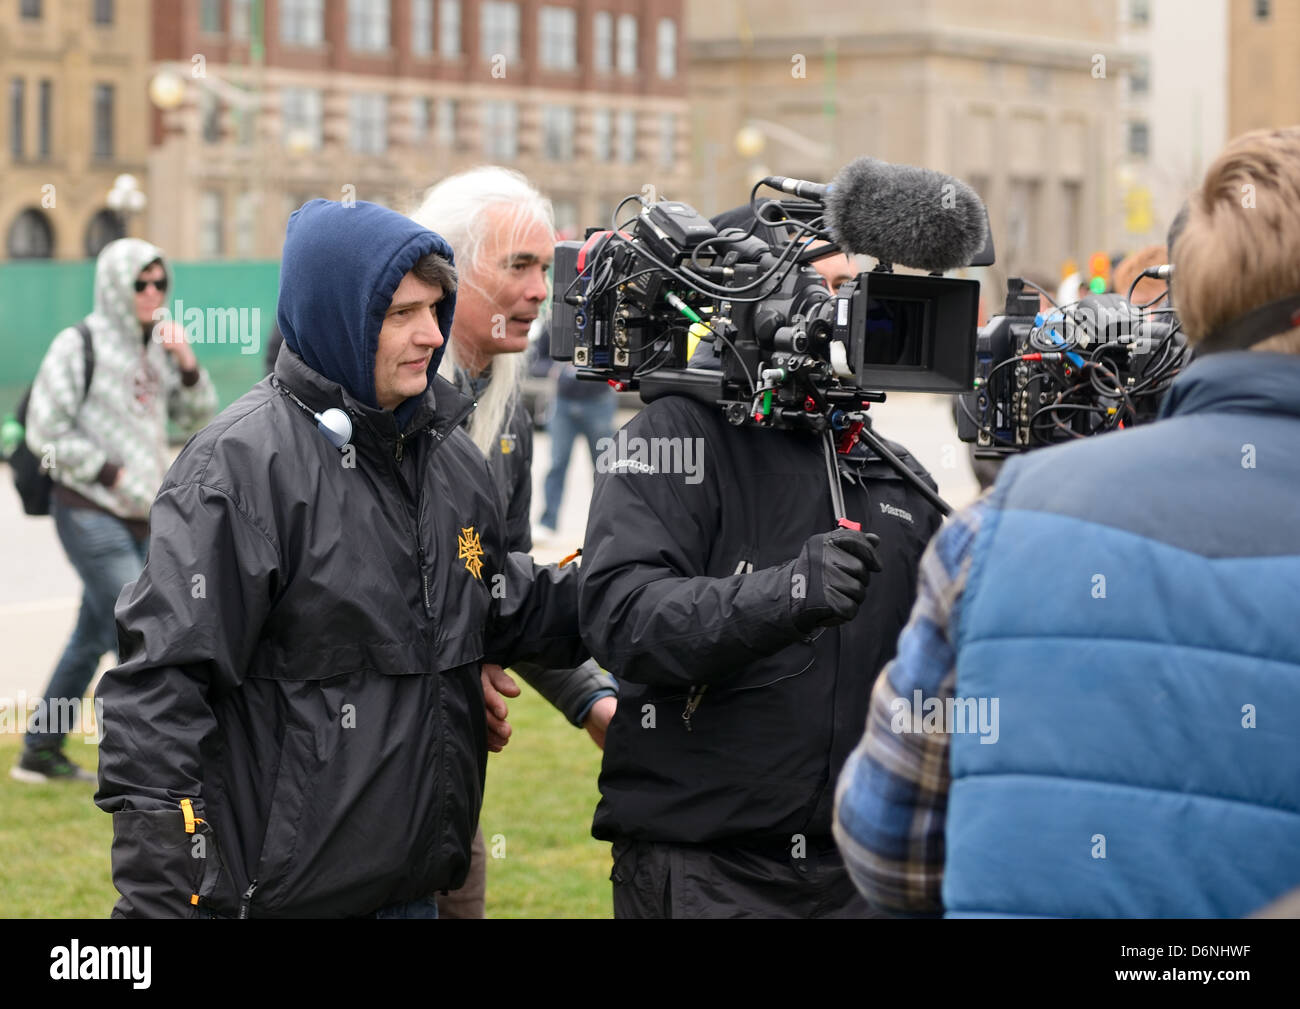 Mike Clattenburg director of the popular Trailer Park Boys show directs a scene for the third TPB movie Apr 20, Stock Photo